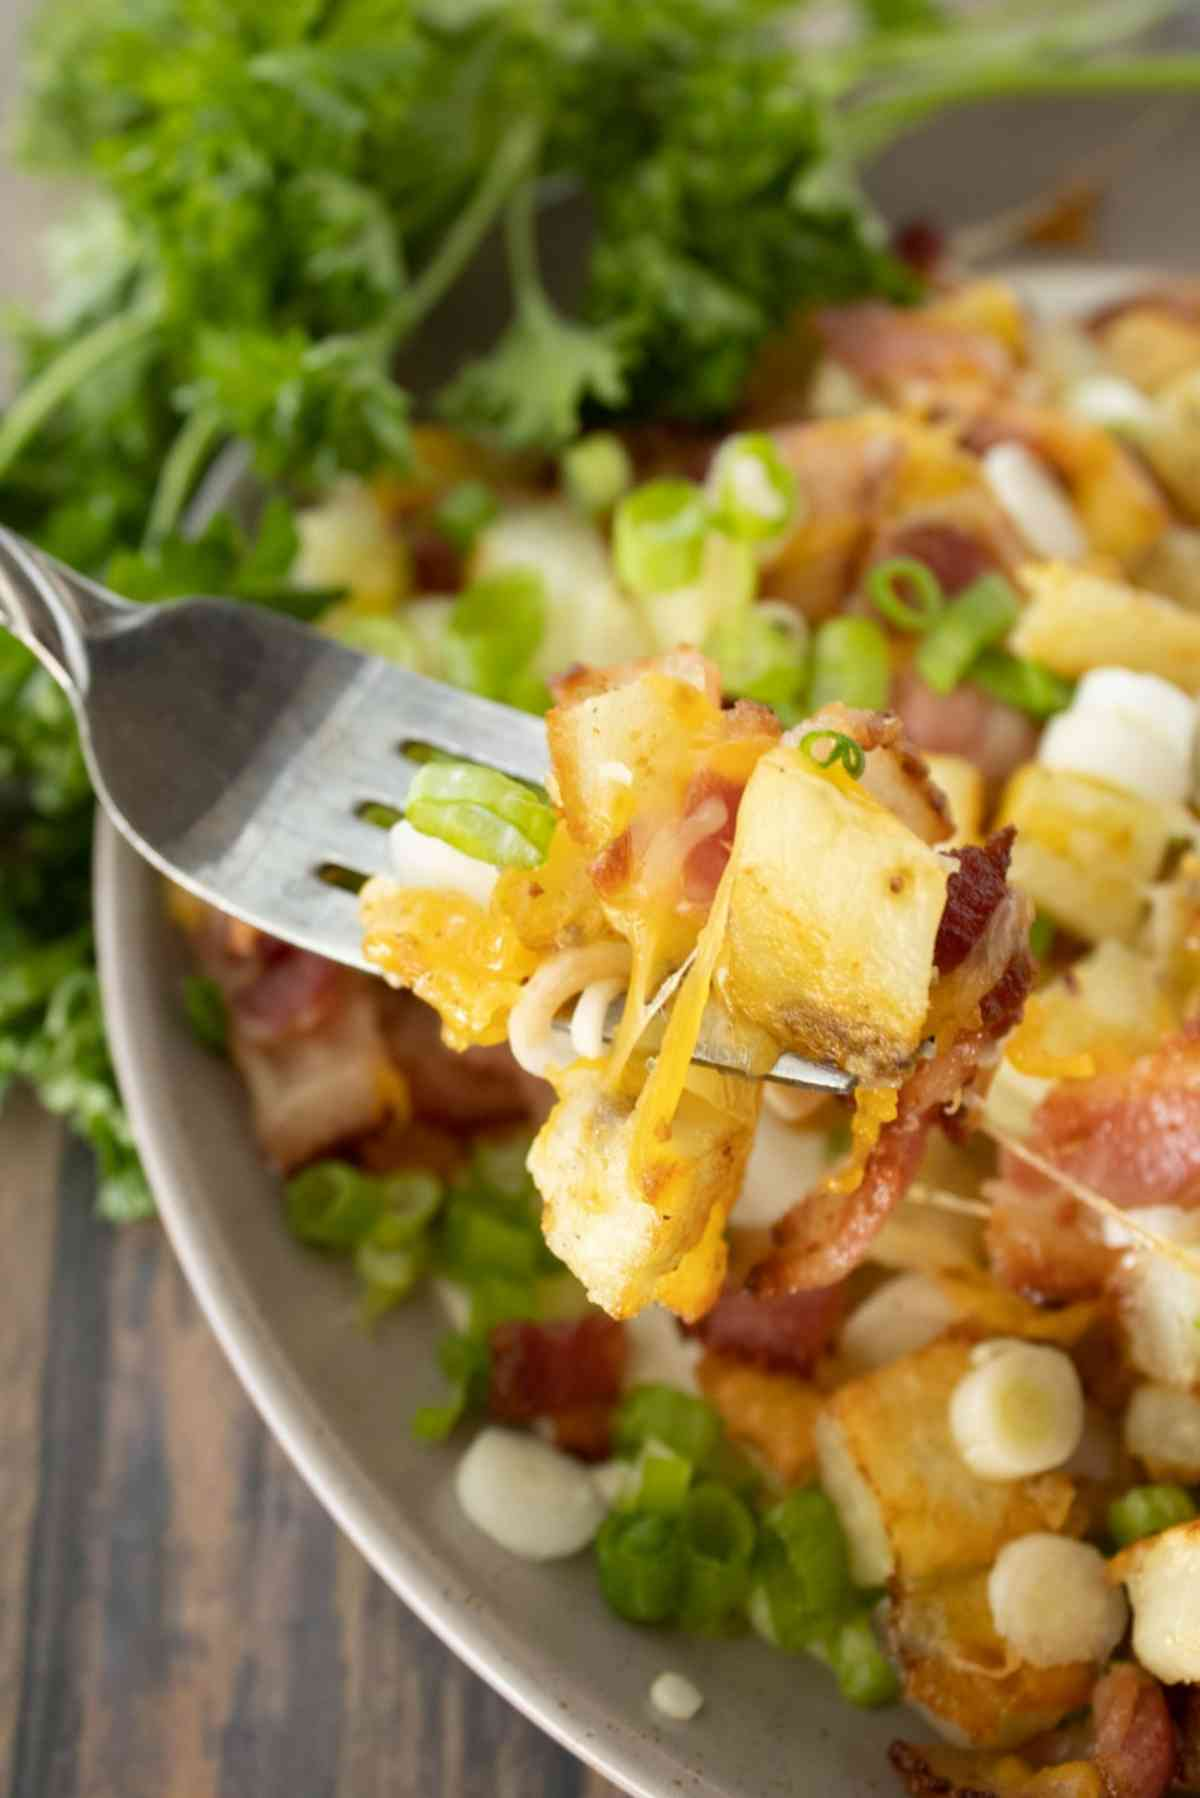 Plateful of crispy potatoes covered in bacon, cheese and green onions.